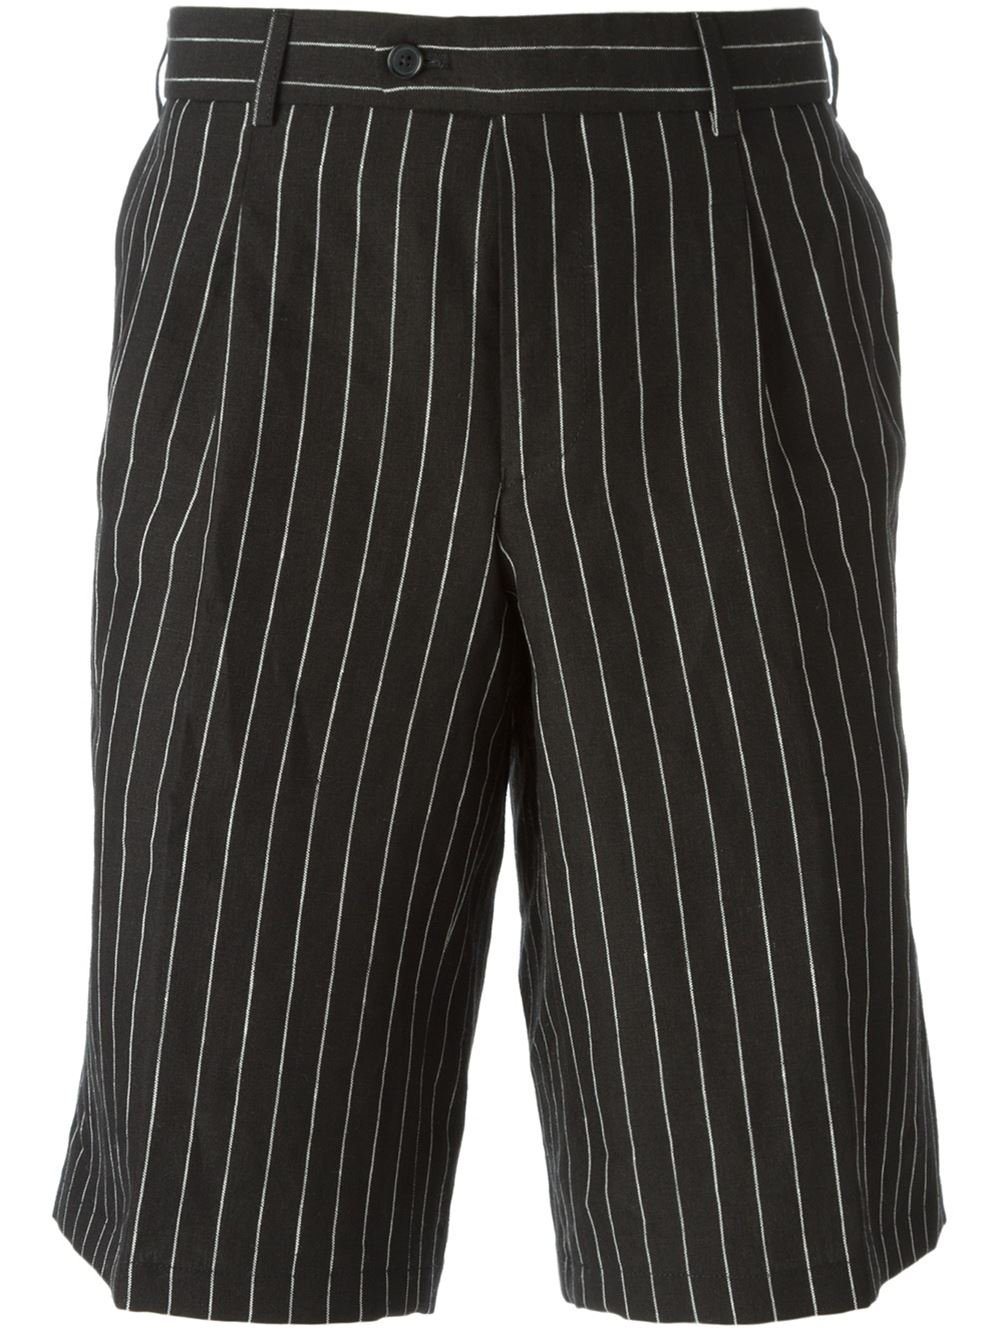 Casely-Hayford Pinstripe Tailored Shorts In Black For Men -1026